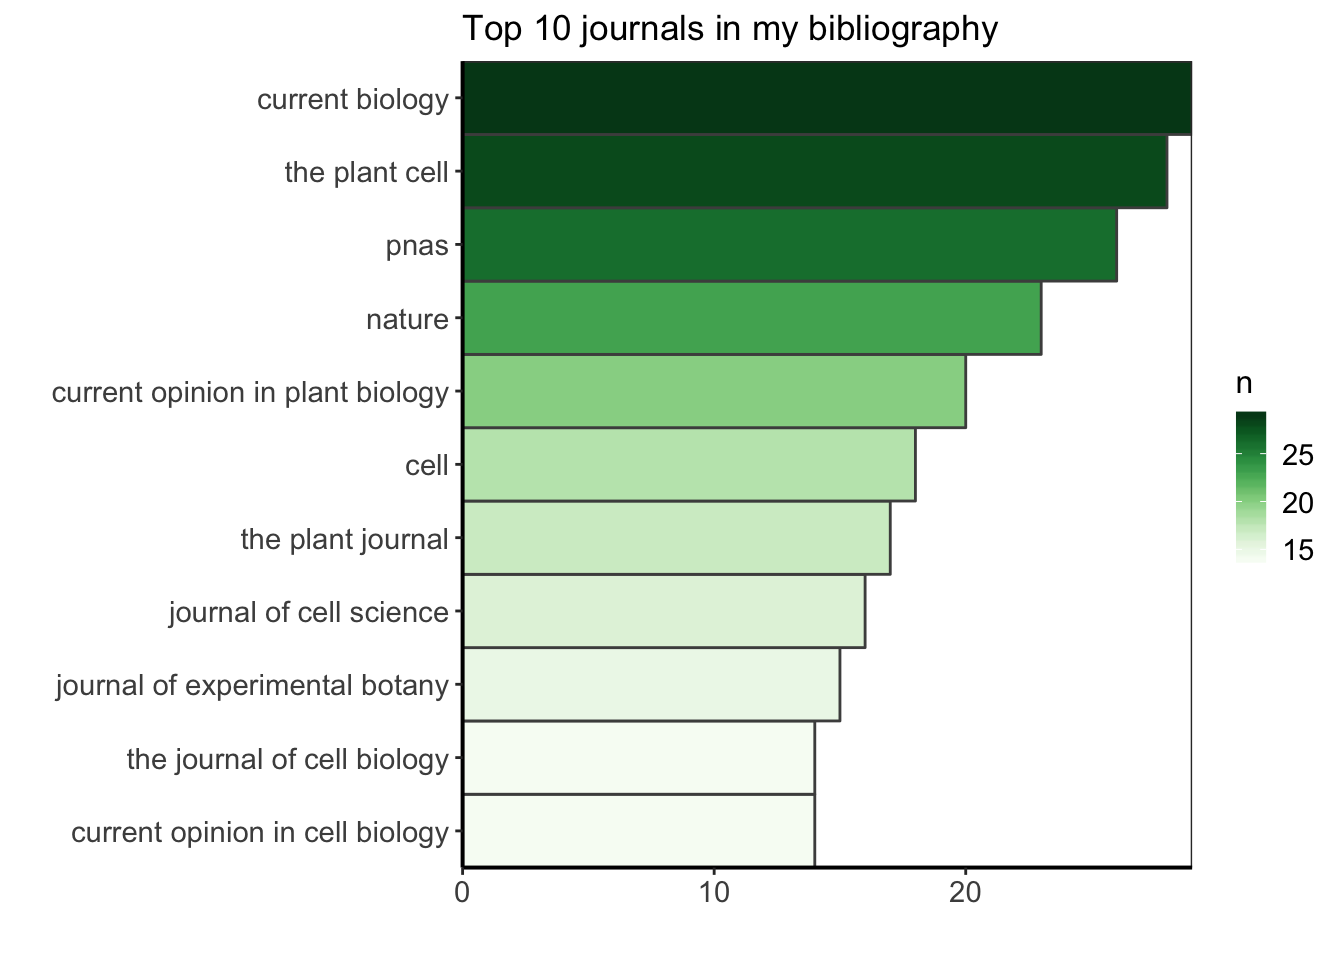 Analysing bibliographical references with R